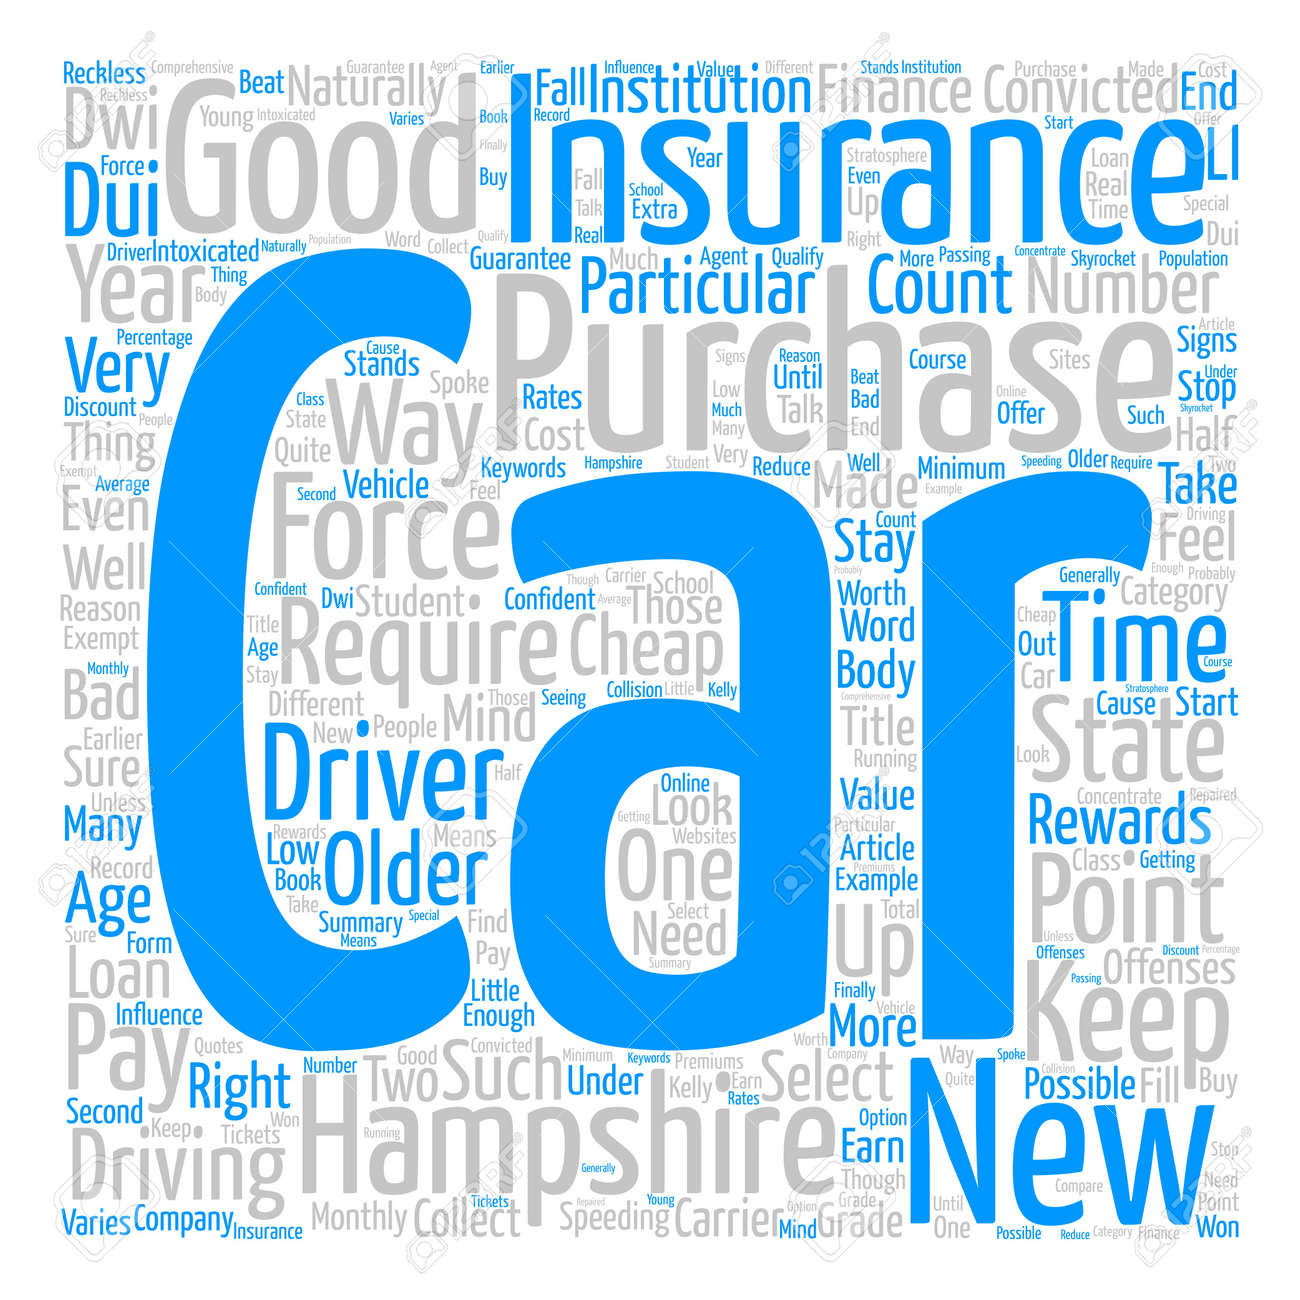 Get Cheap Insurance How To Get Cheap Car Insurance In New Hampshire Text Background